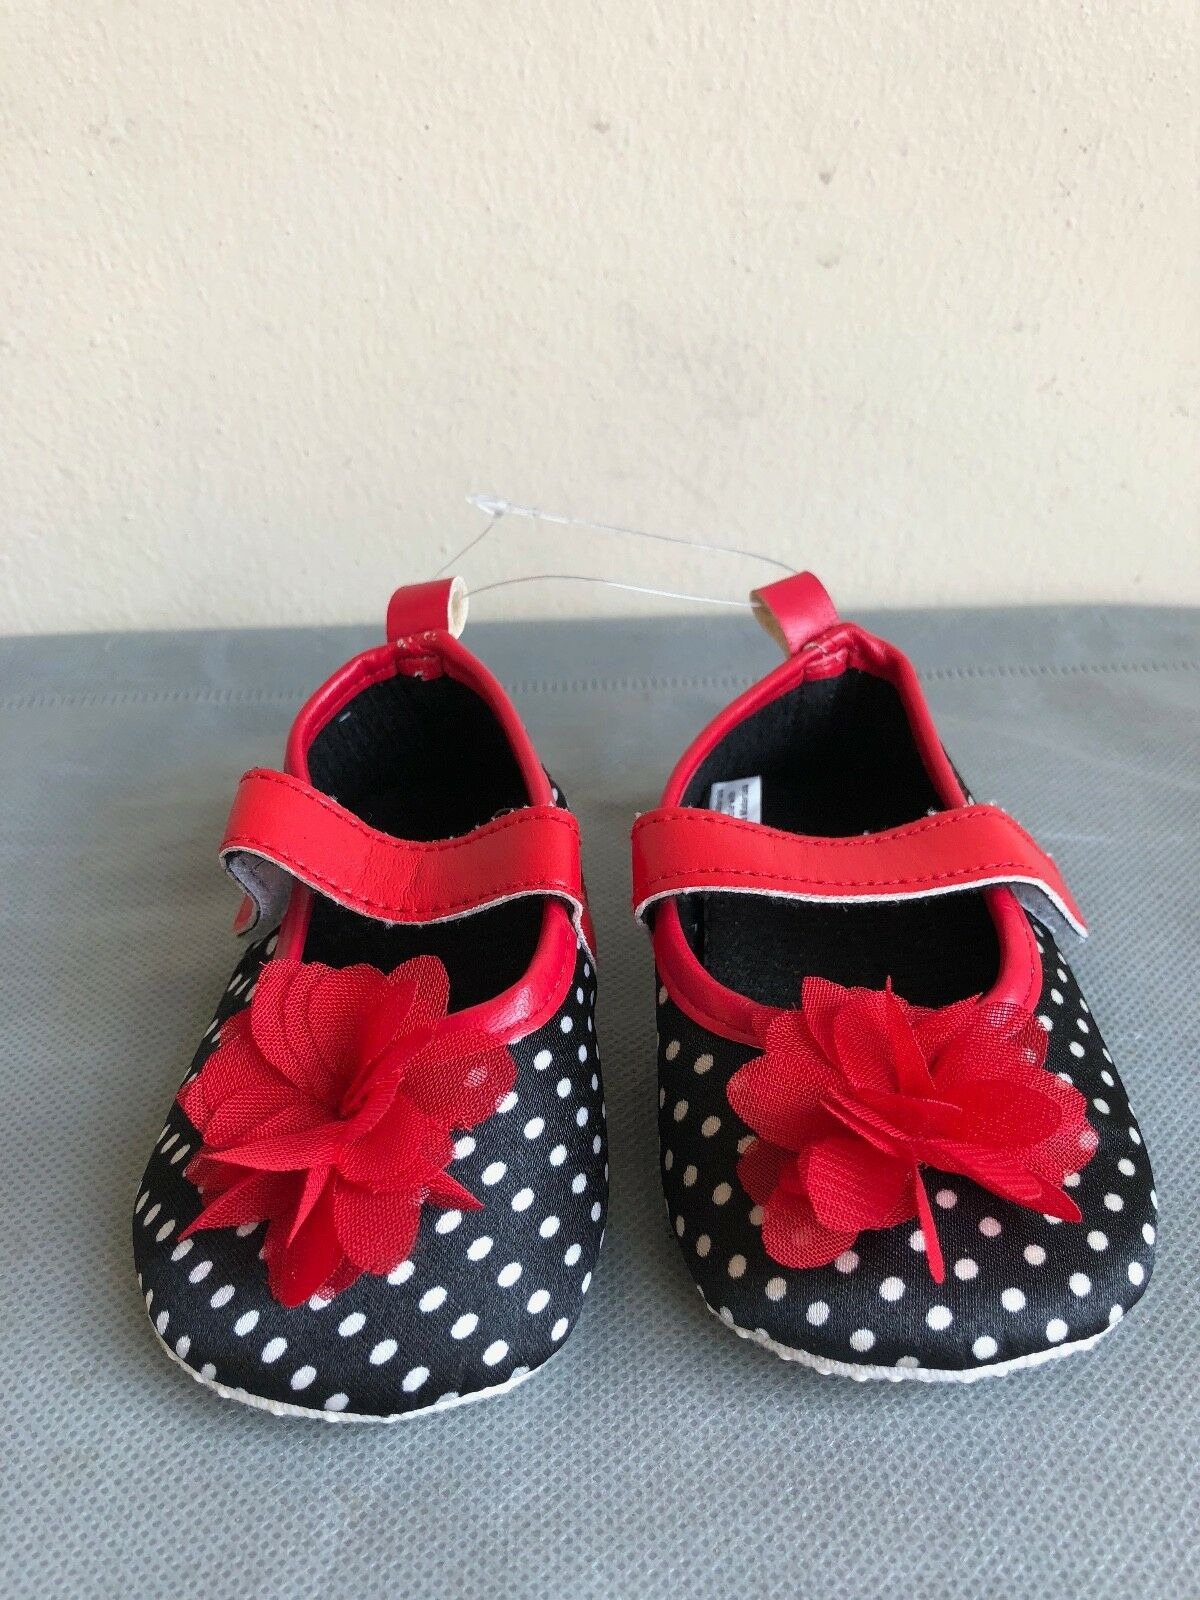 Luvable Friends Baby Girl shoes polka dots black/white-red f